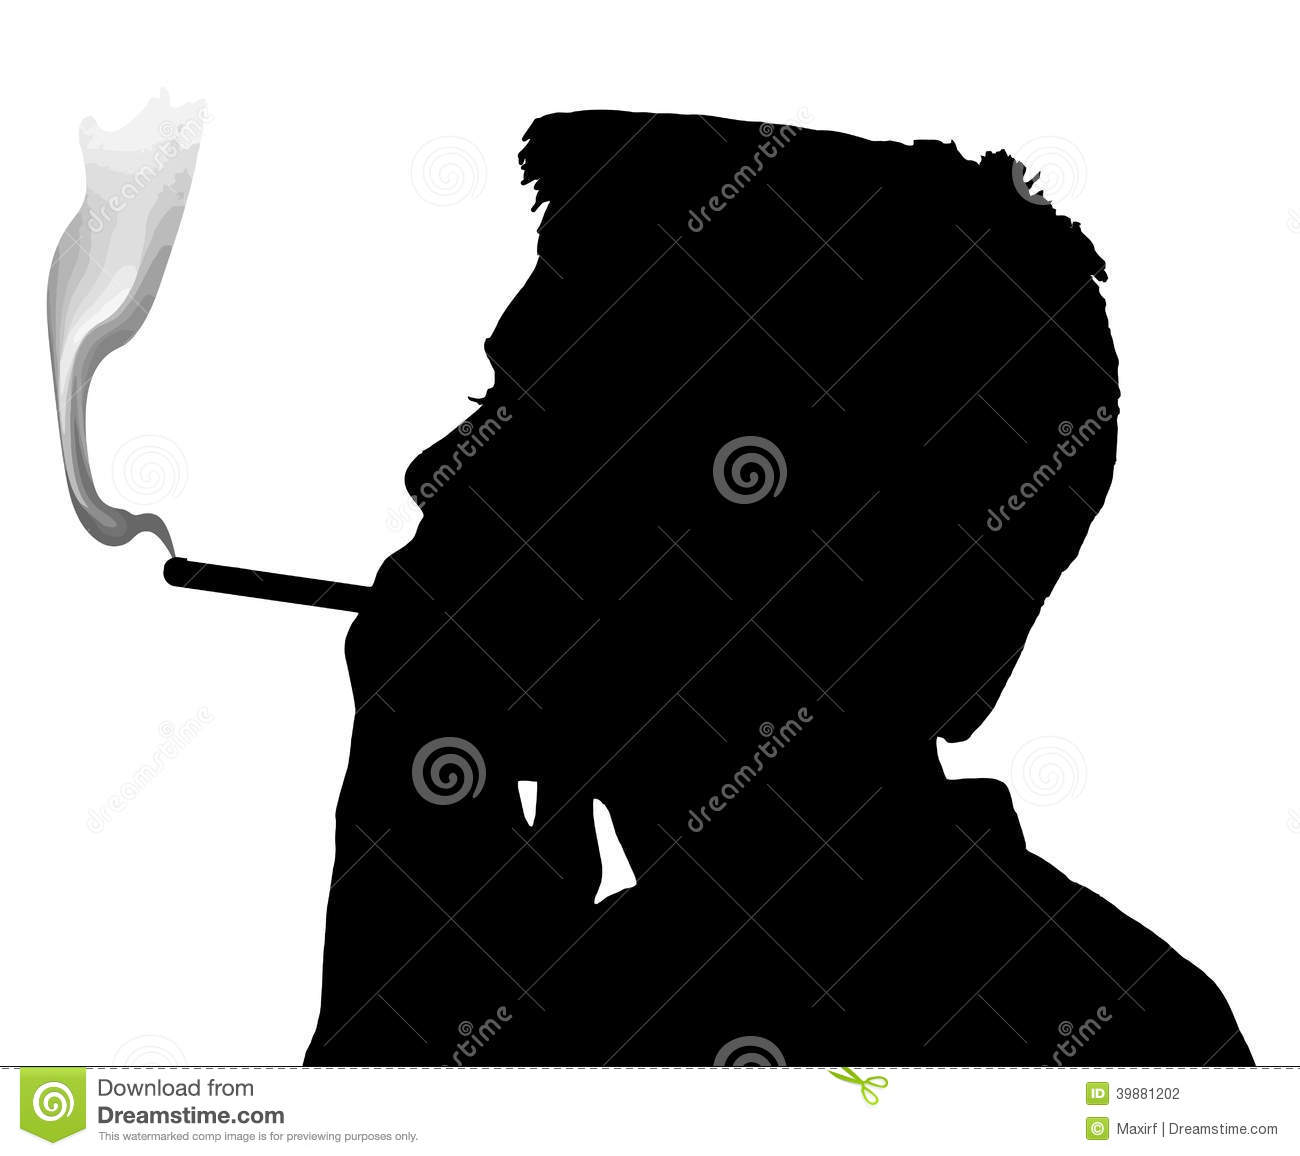 Teen Boy Silhouette Smoking Cigarette Stock Vector - Image: 39881202